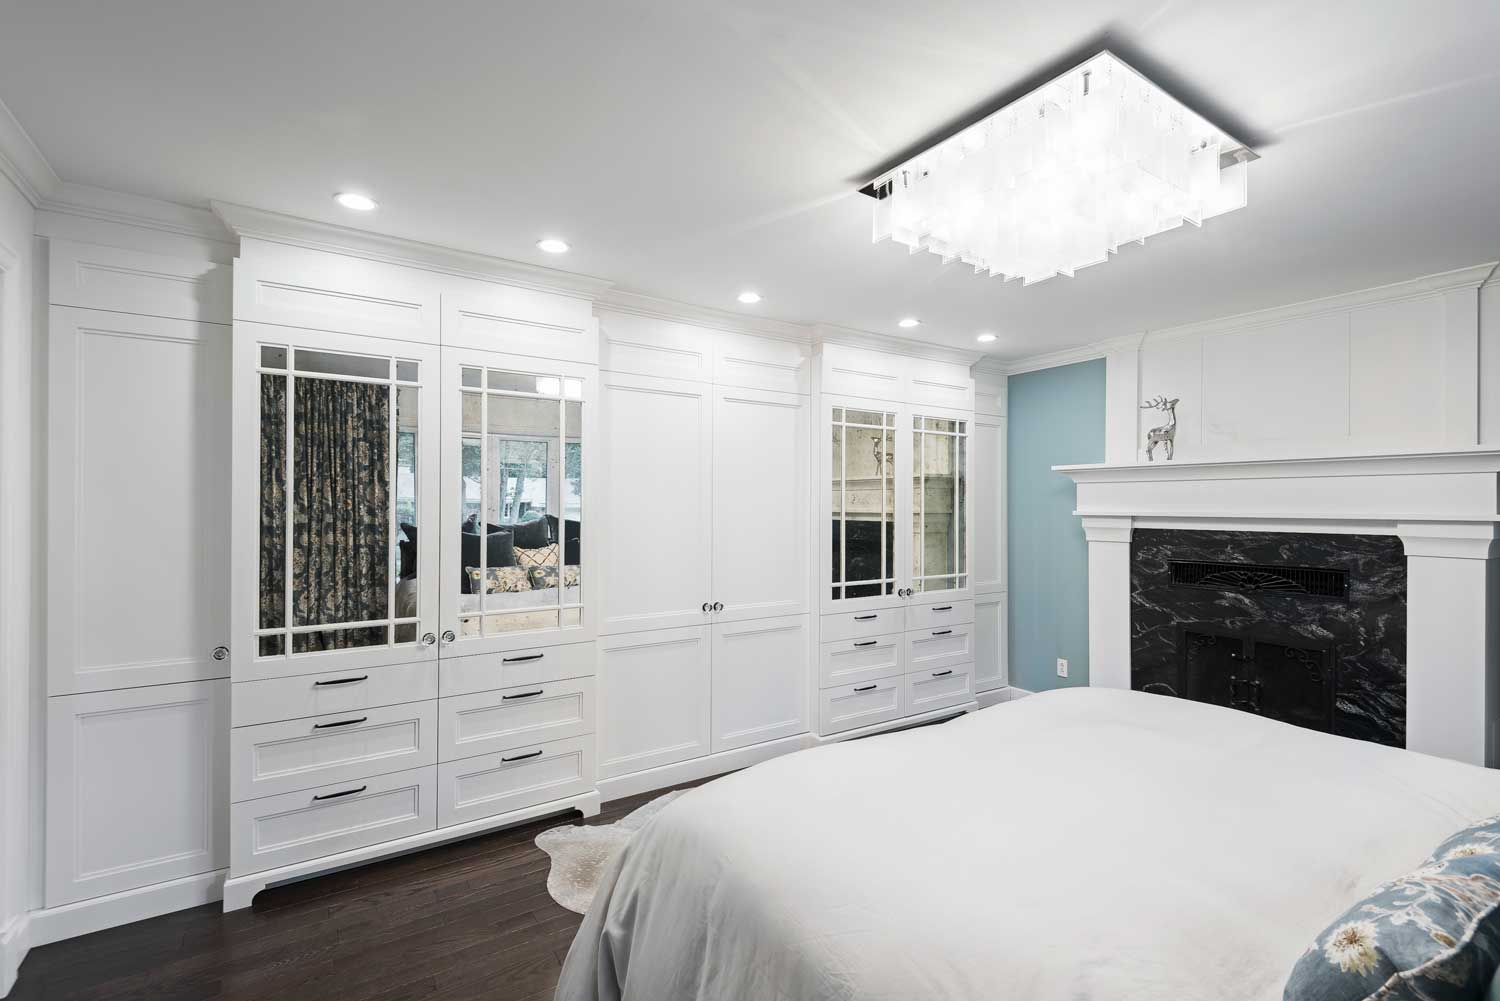 Ste-Therese II - AINSLEY DESIGN & CONCEPT - Design interieur Concept ...